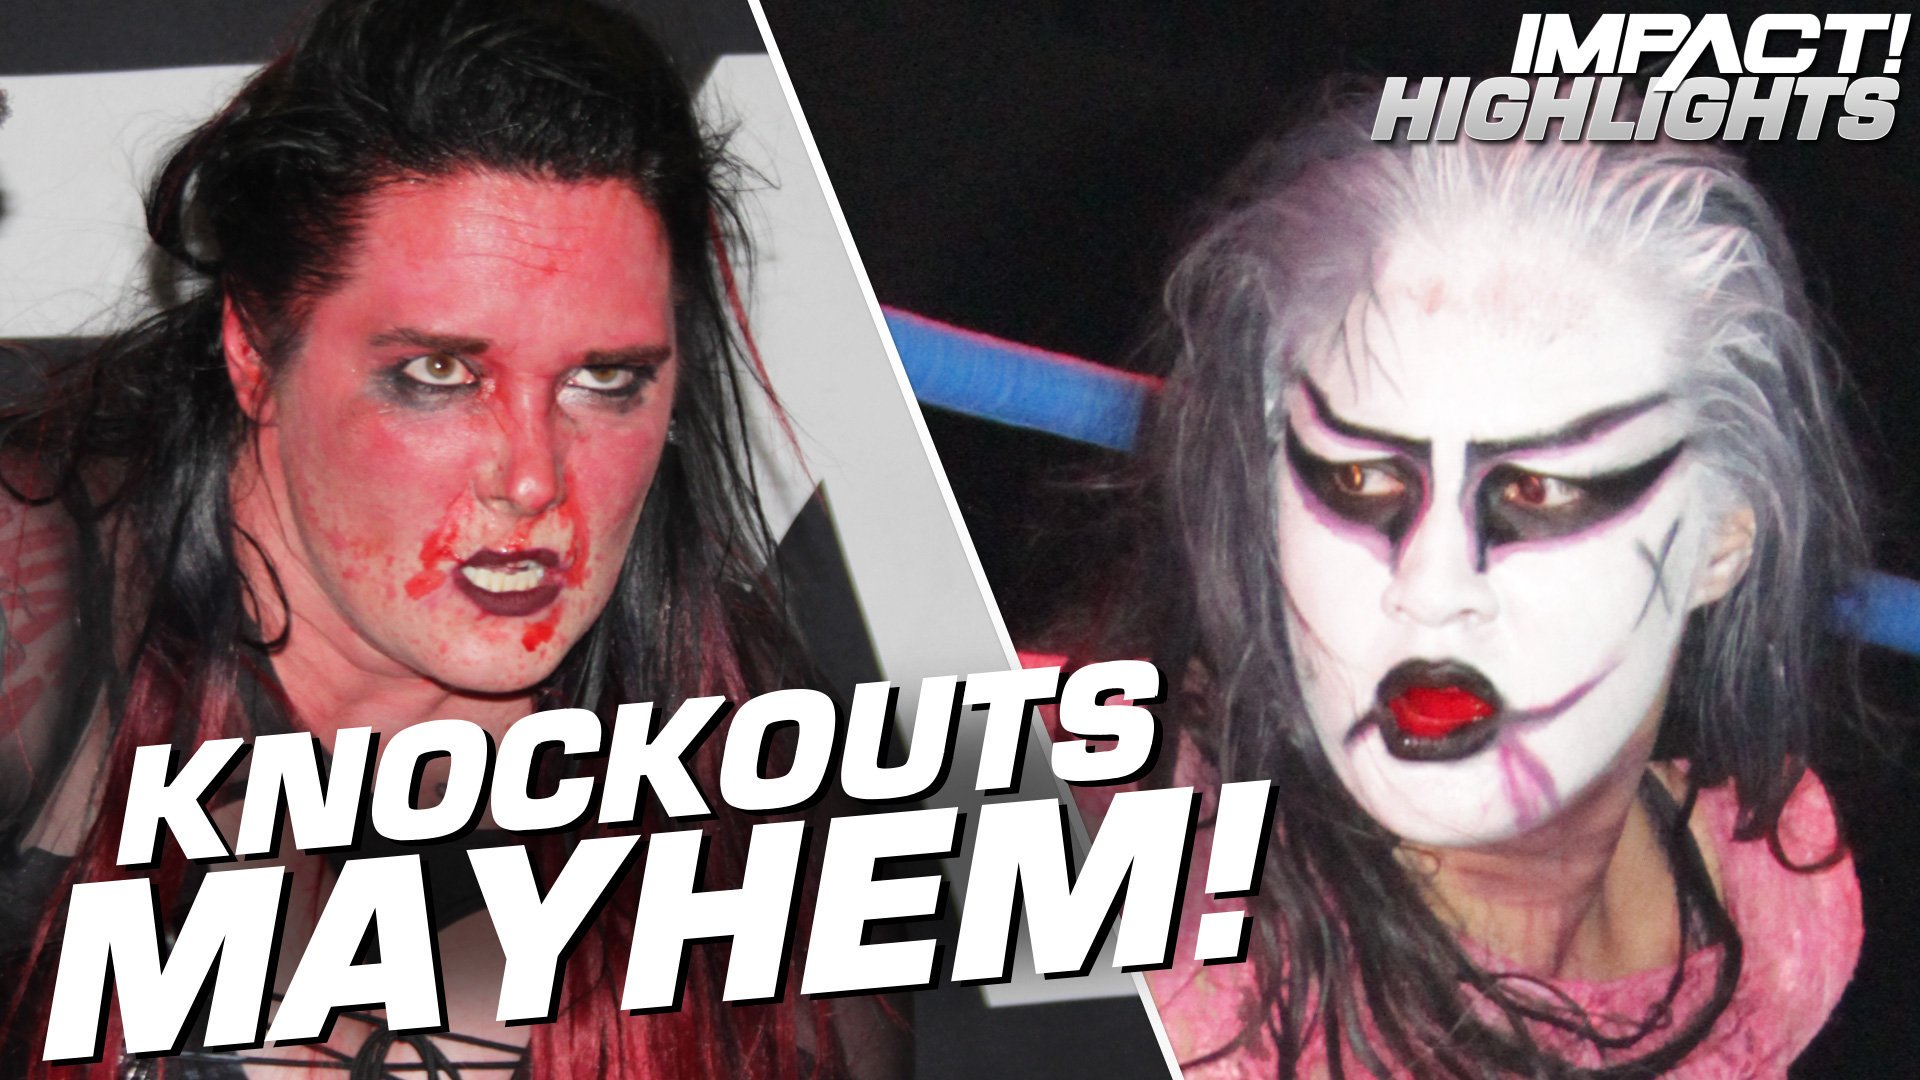 Impact Wrestling: The war between @FearHavok & @realsuyung is FAR from over after their match ended in ch...